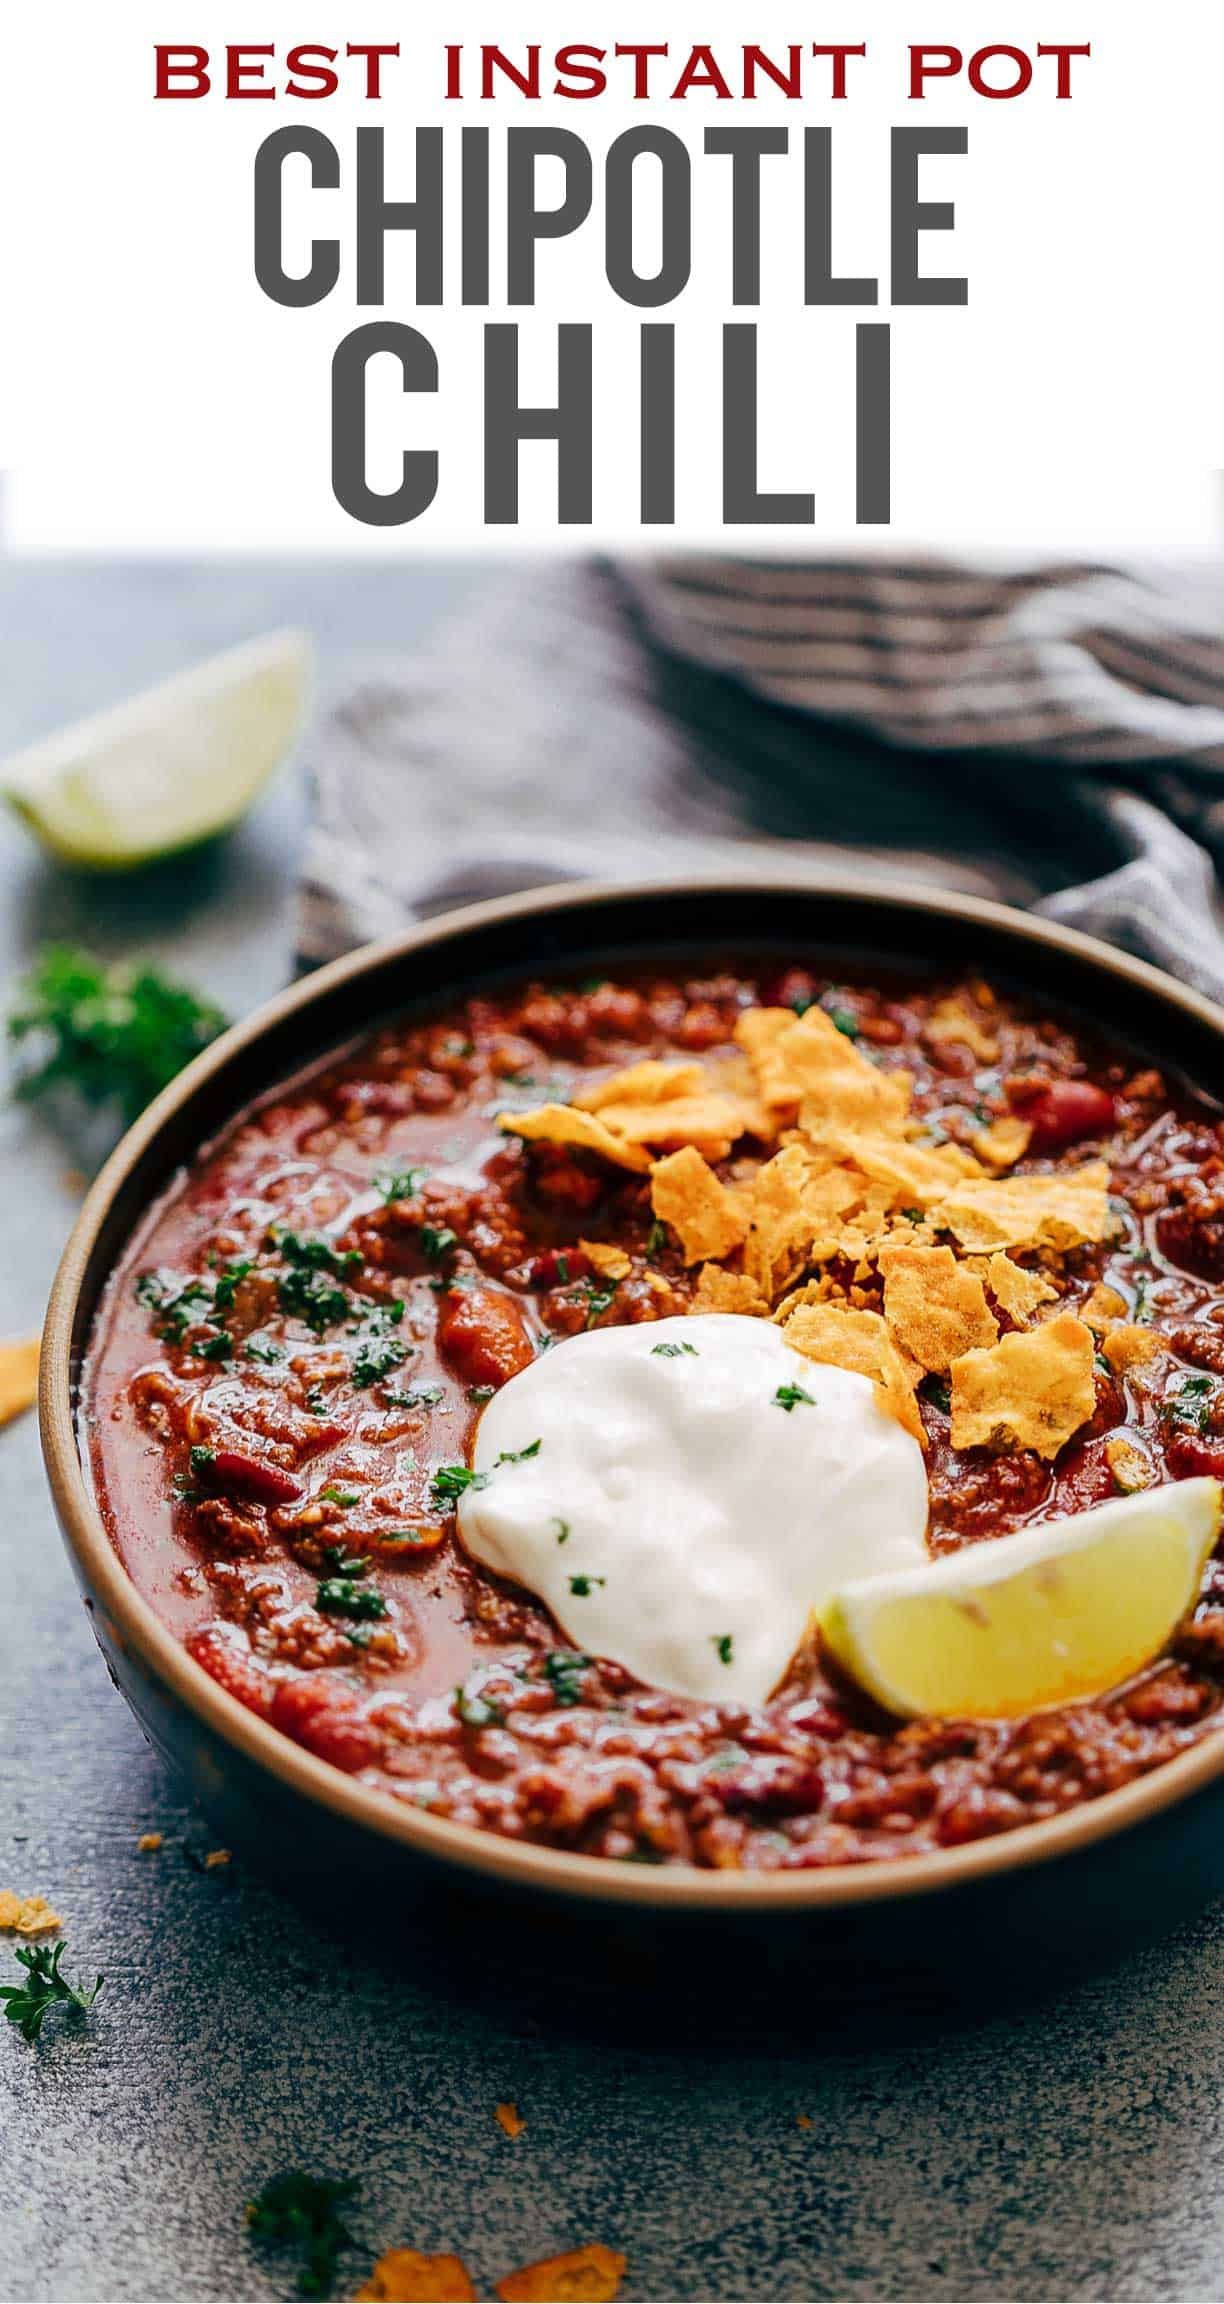 Instant Pot Chipotle Chili (Pressure Cooker recipe) is the easiest & fastest way to homemade chili. Spicy, thick, made with ground beef, chipotle peppers and dried beans, this chili does not taste like soup and is the perfect one pot meal for your families dinner. Comfort Food at its best!